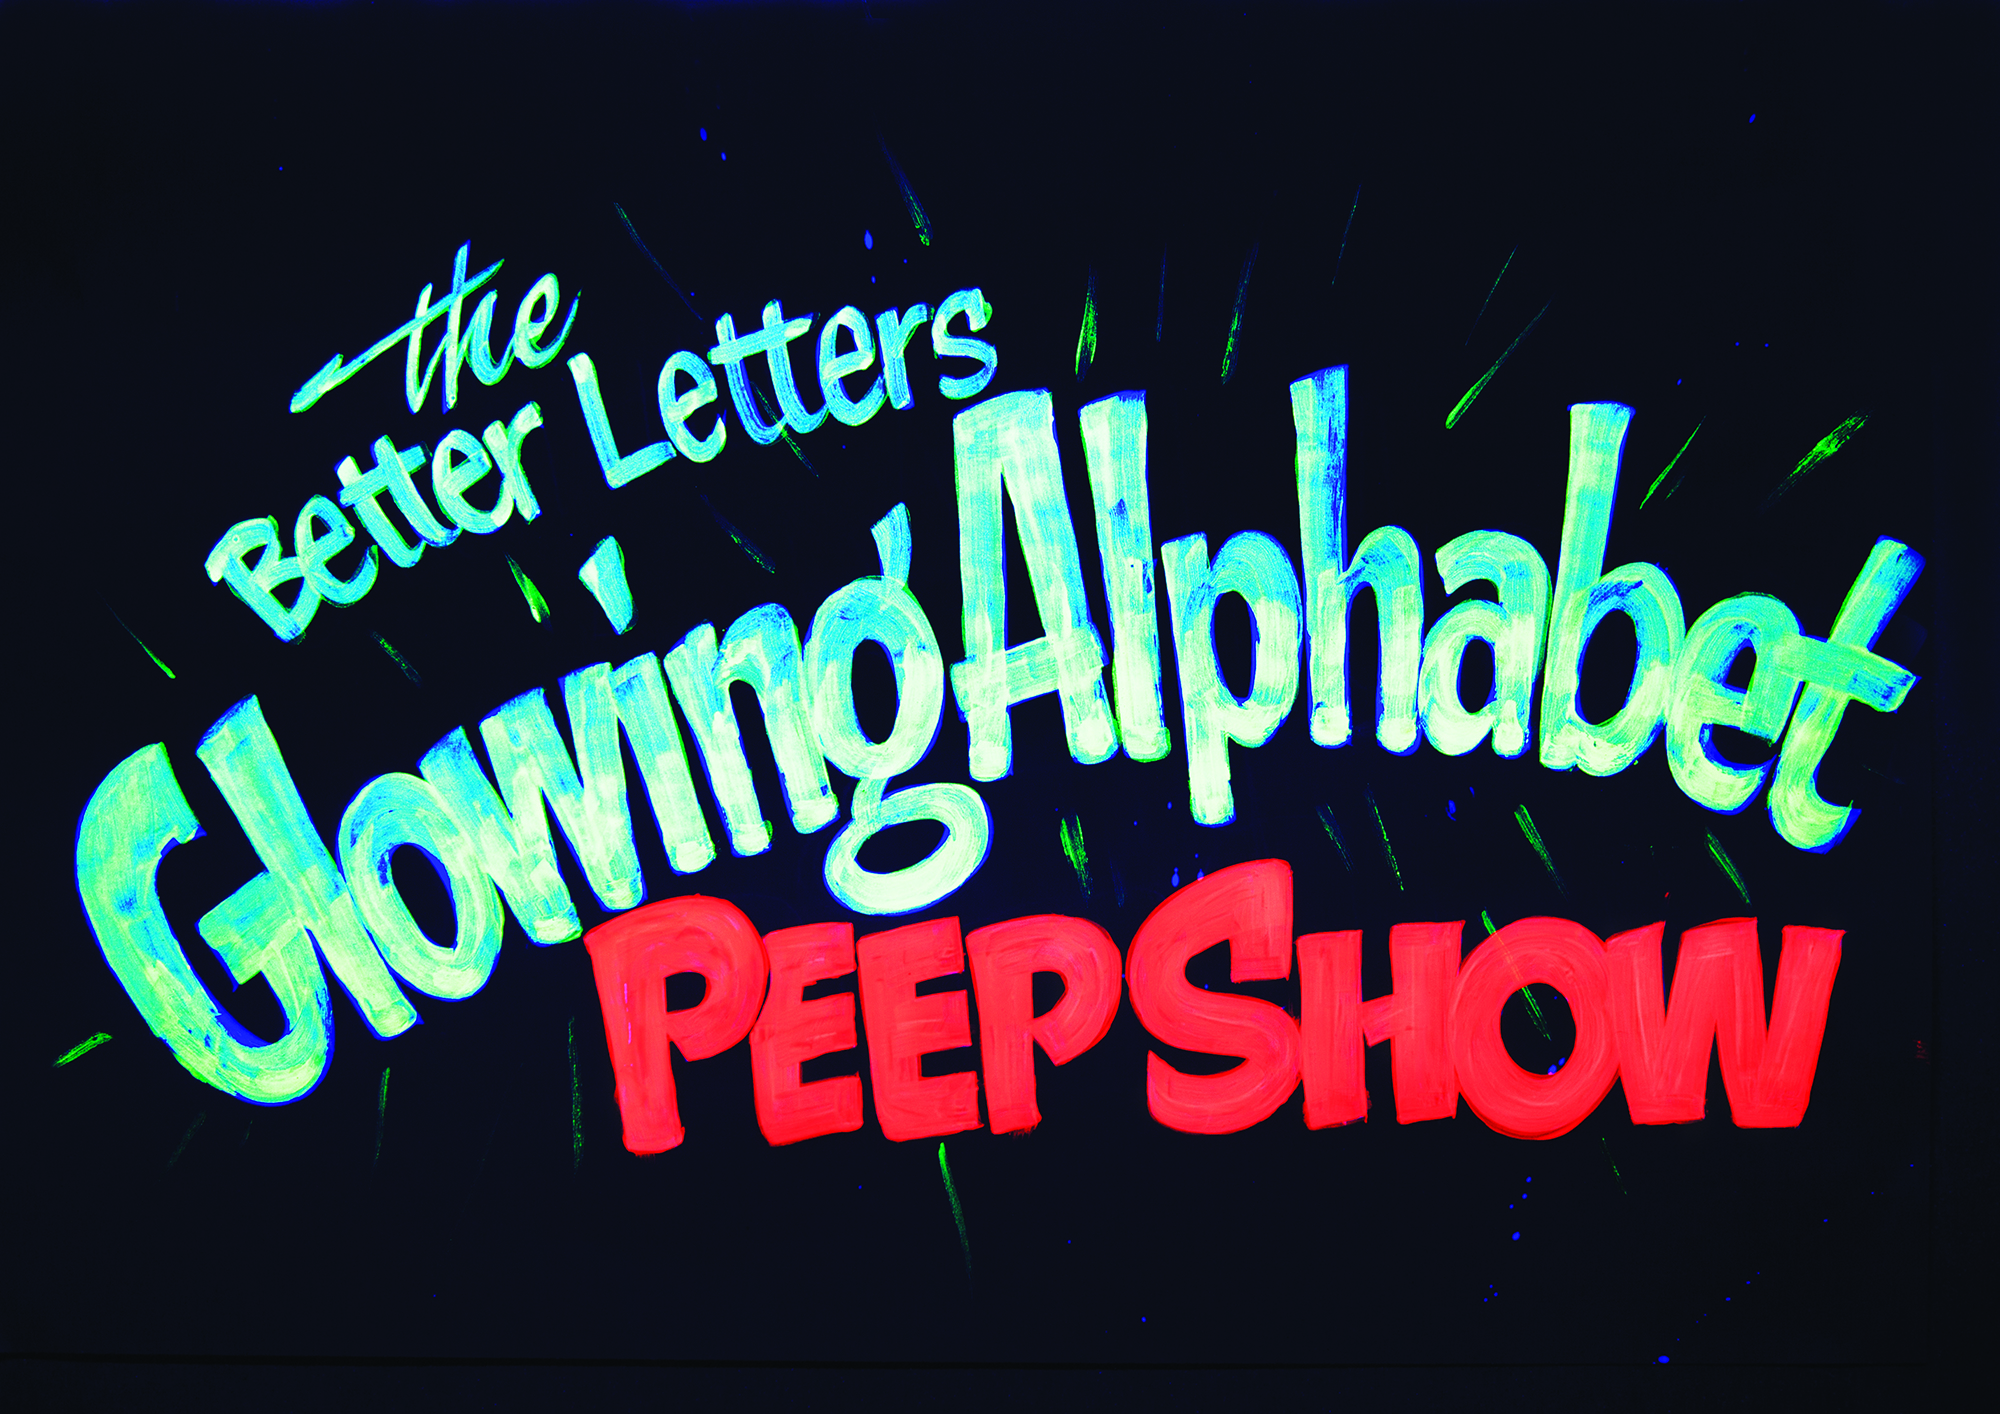 Better-Letters-Glowing-Alphabet-Peep-Show-1